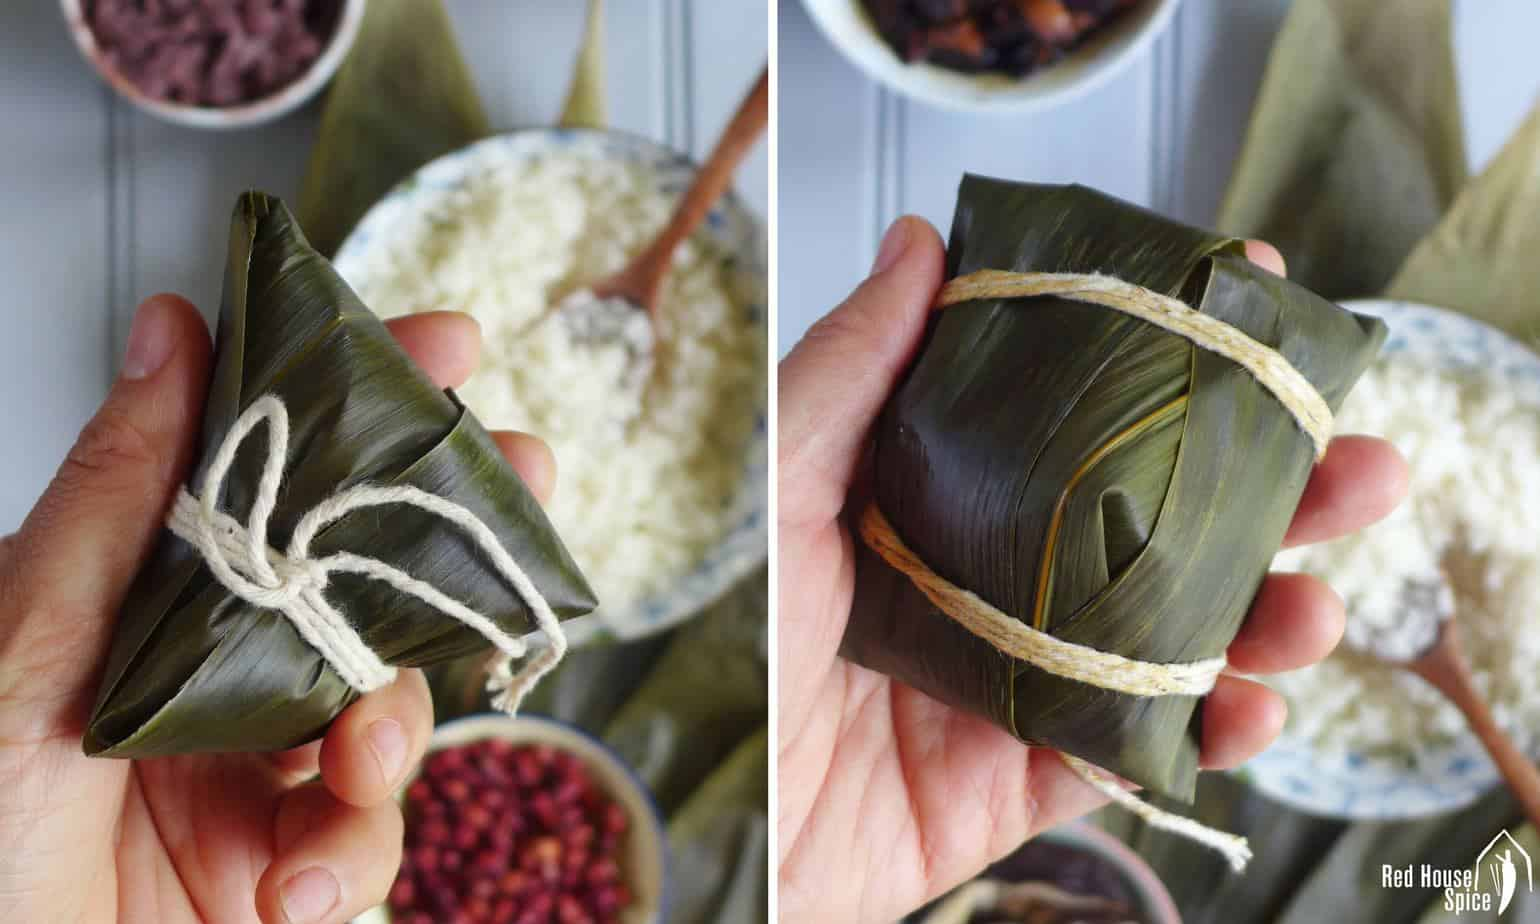 Chinese sticky rice dumplings in two different shapes